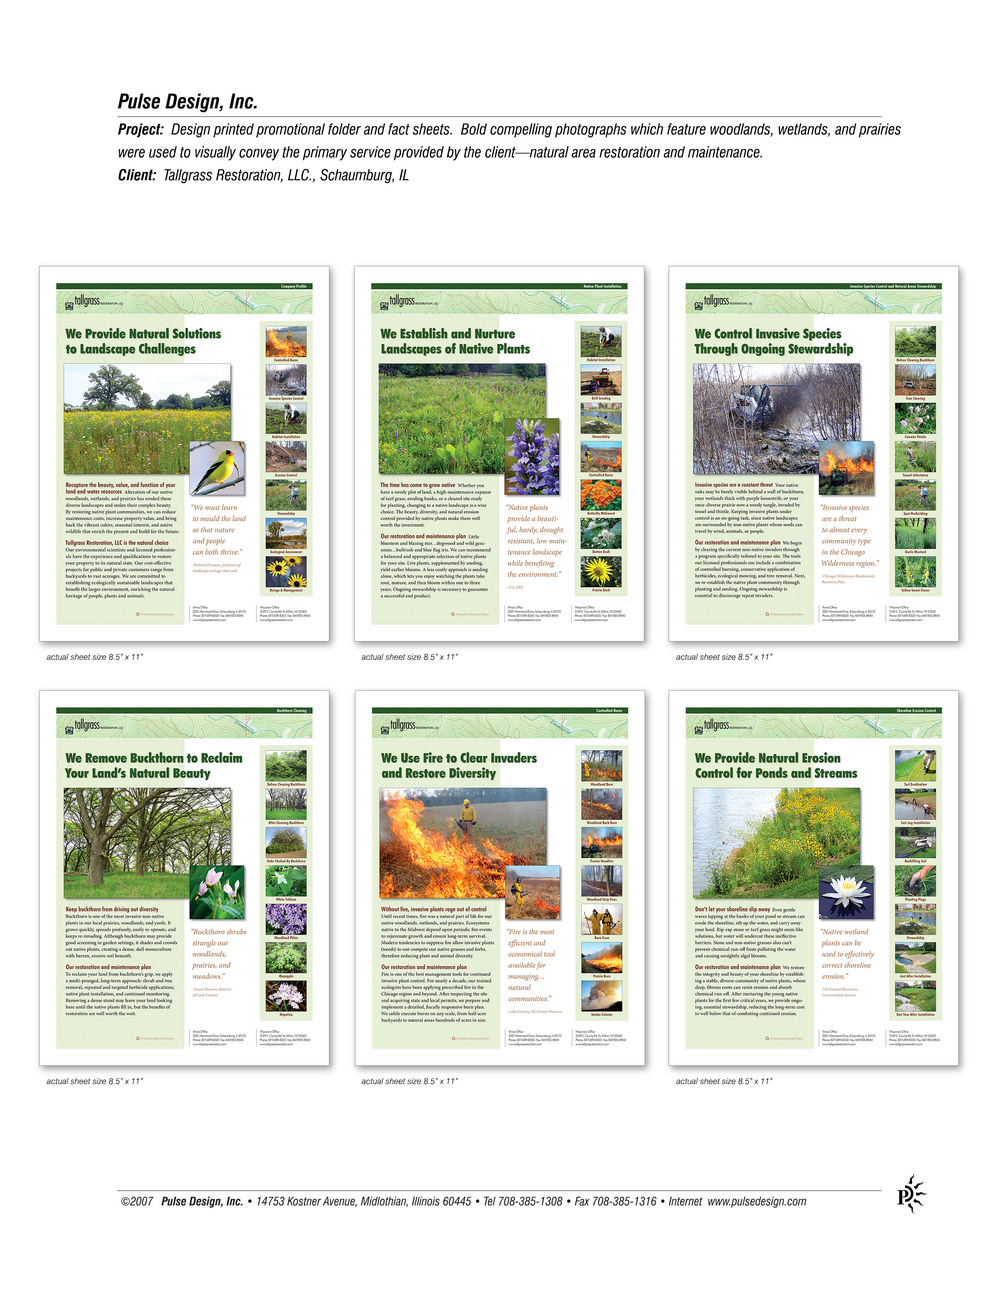 Tallgrass-Fact-Sheets-Pulse-Design-Inc.jpg